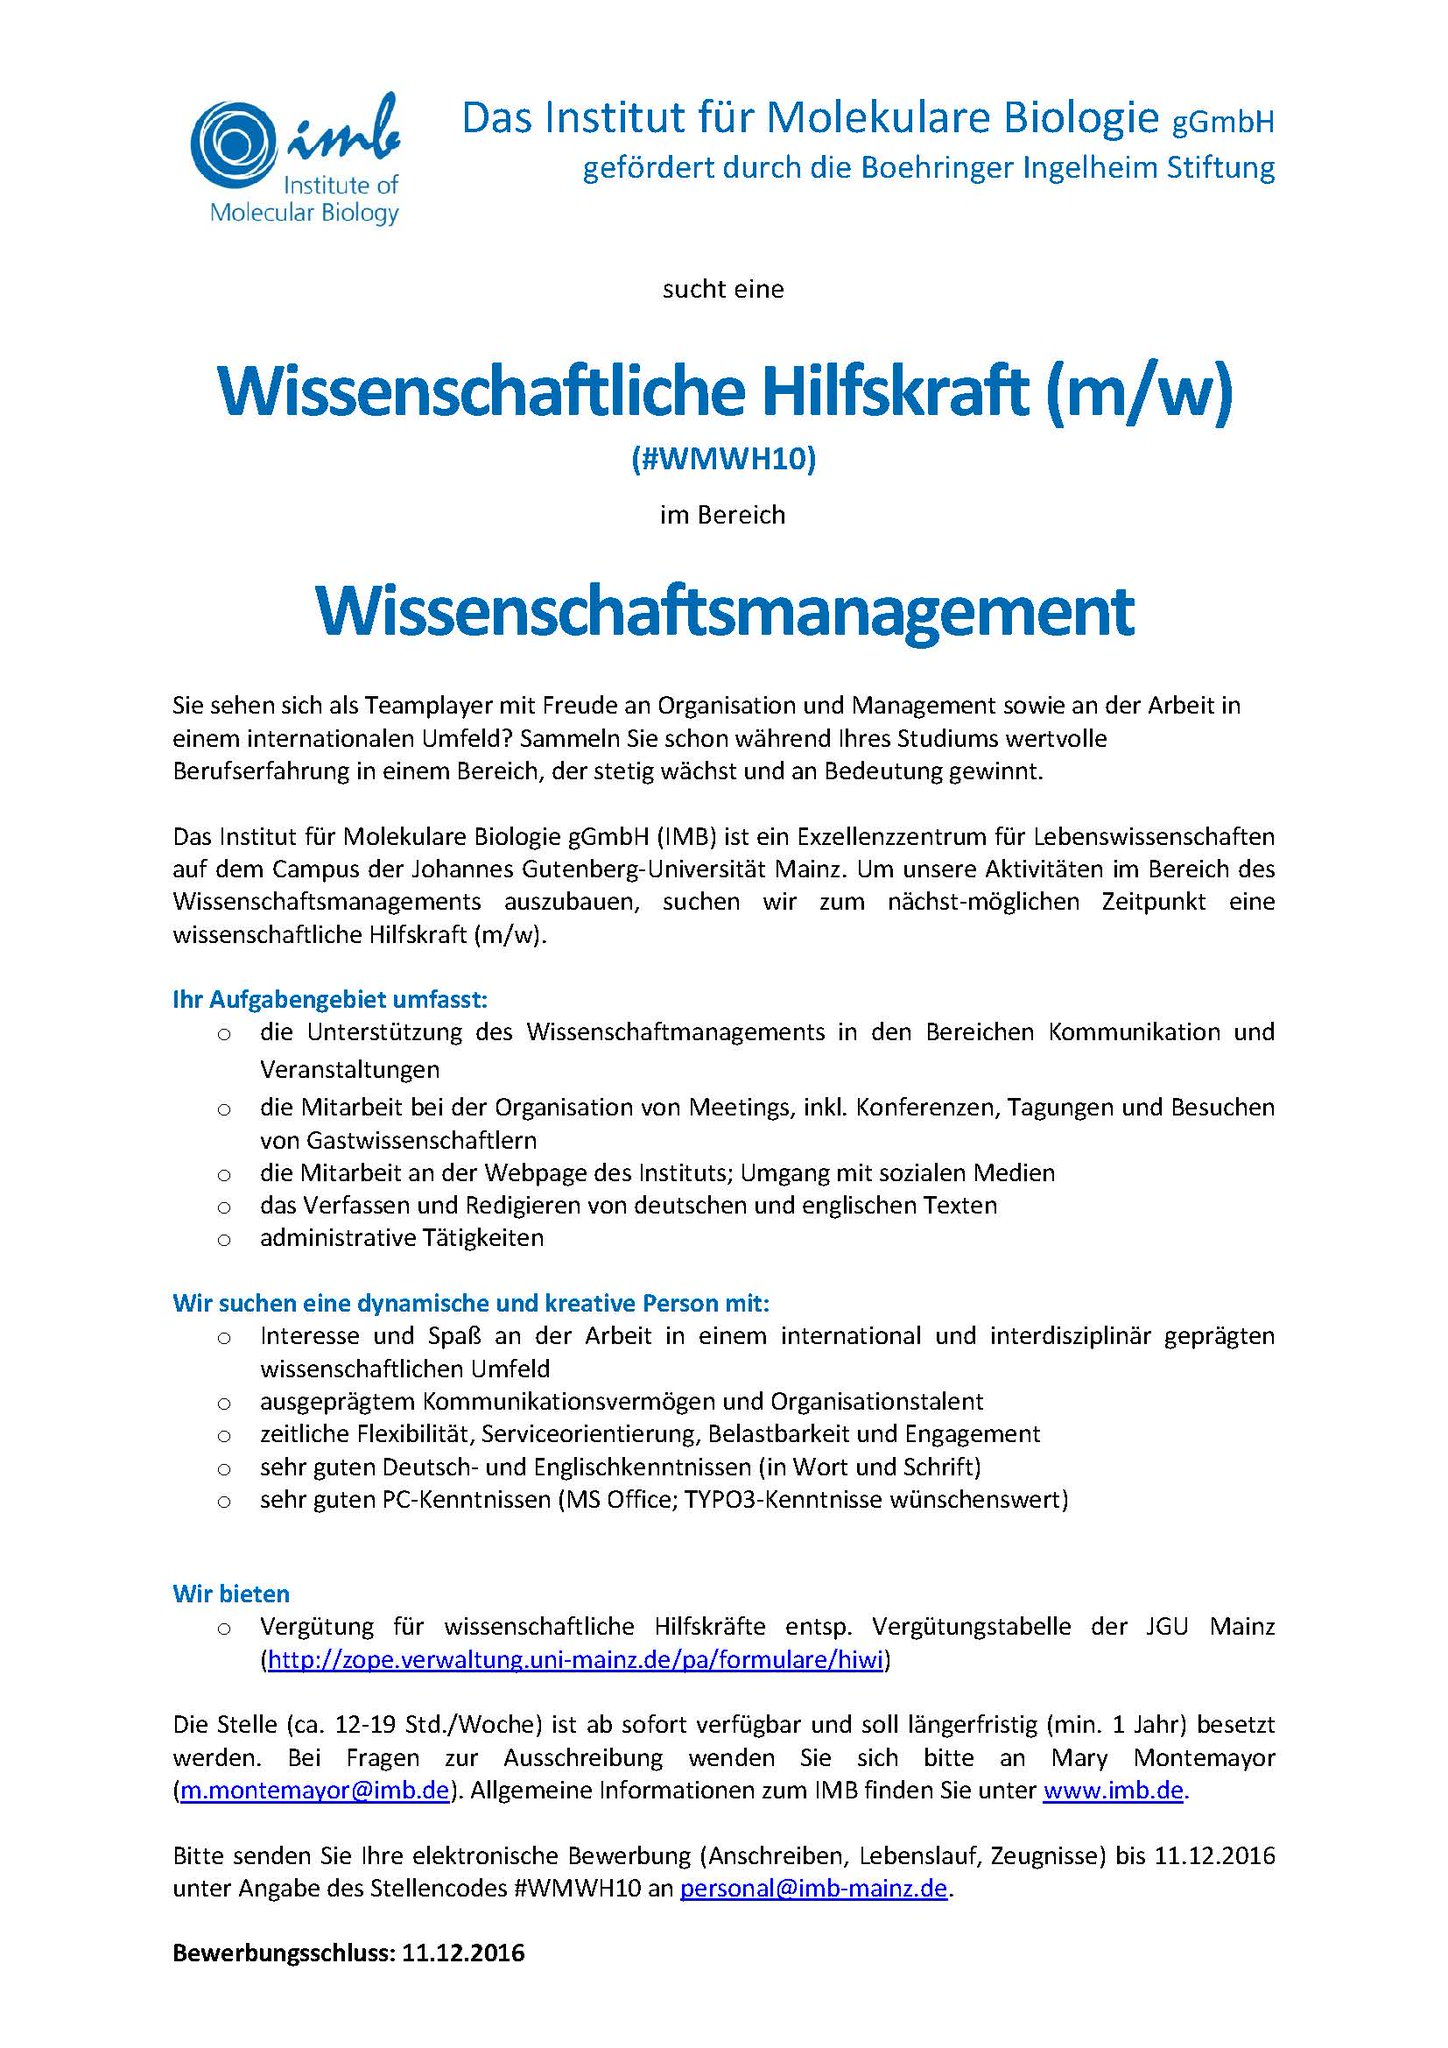 imb mainz on twitter imbs scientific management is looking for a student assistant apply now studentjob - Johannes Gutenberg Lebenslauf